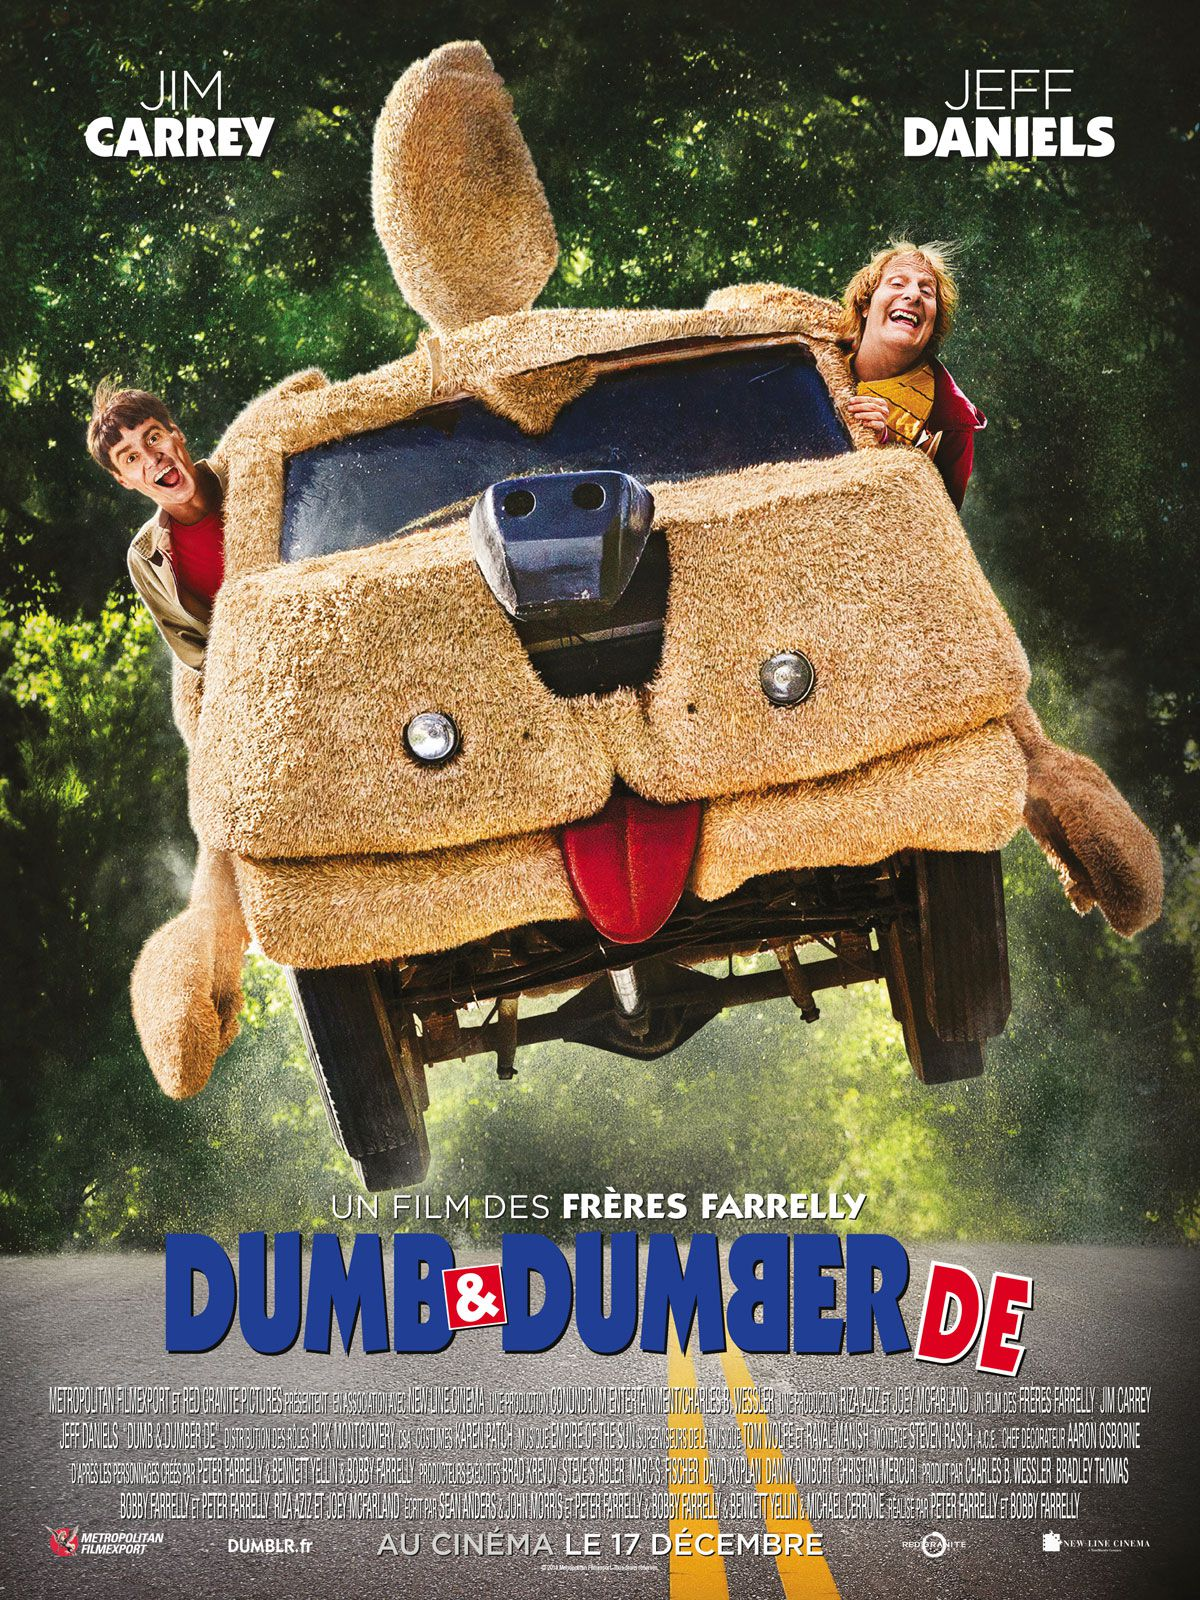 Dumb and Dumber De - Film (2014)